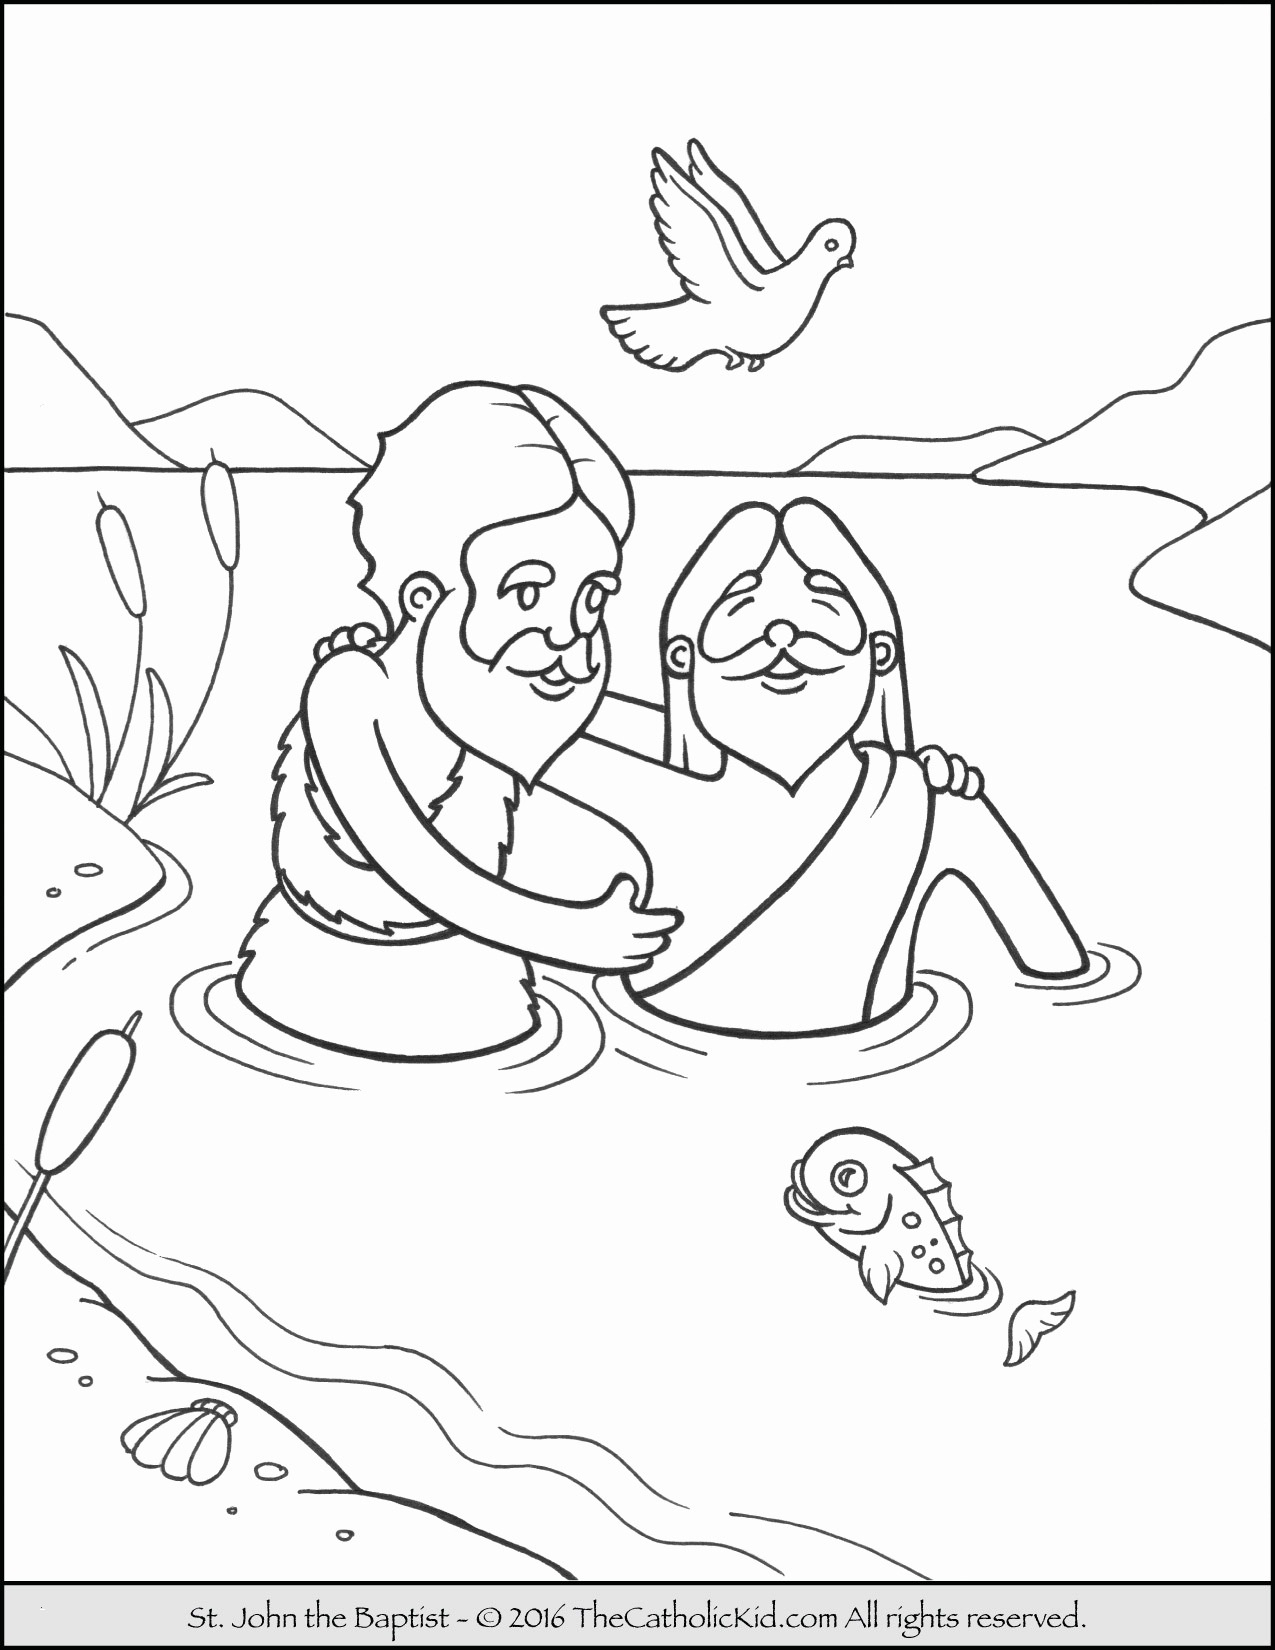 Puerto Rico Coloring Pages  Collection 18a - Free Download